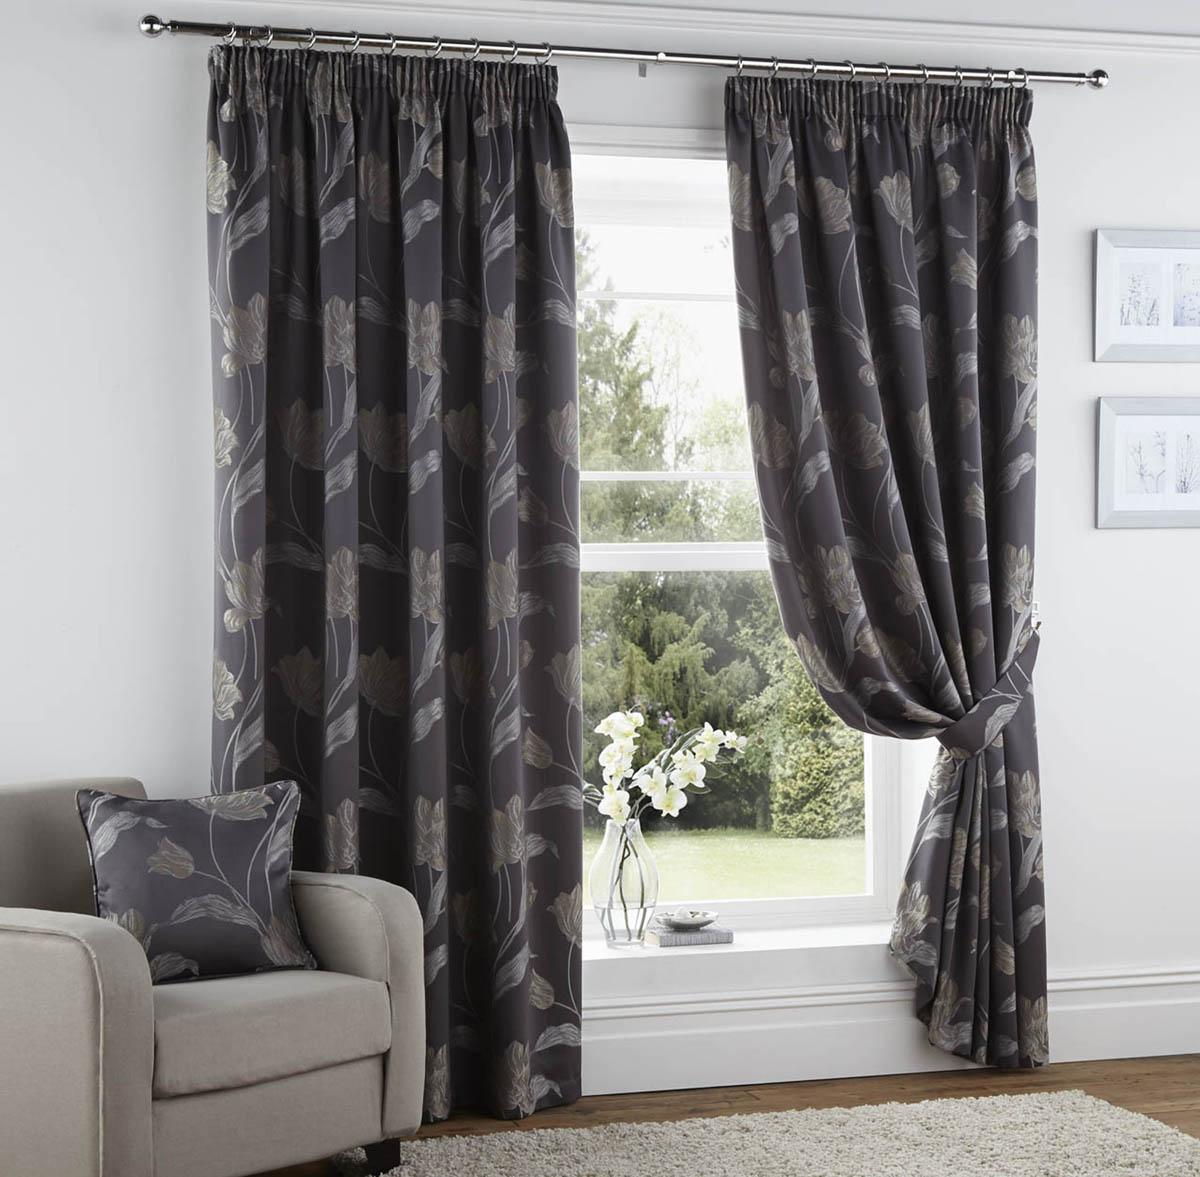 Cheap grey curtains - Sissinghurst Ready Made Lined Curtains